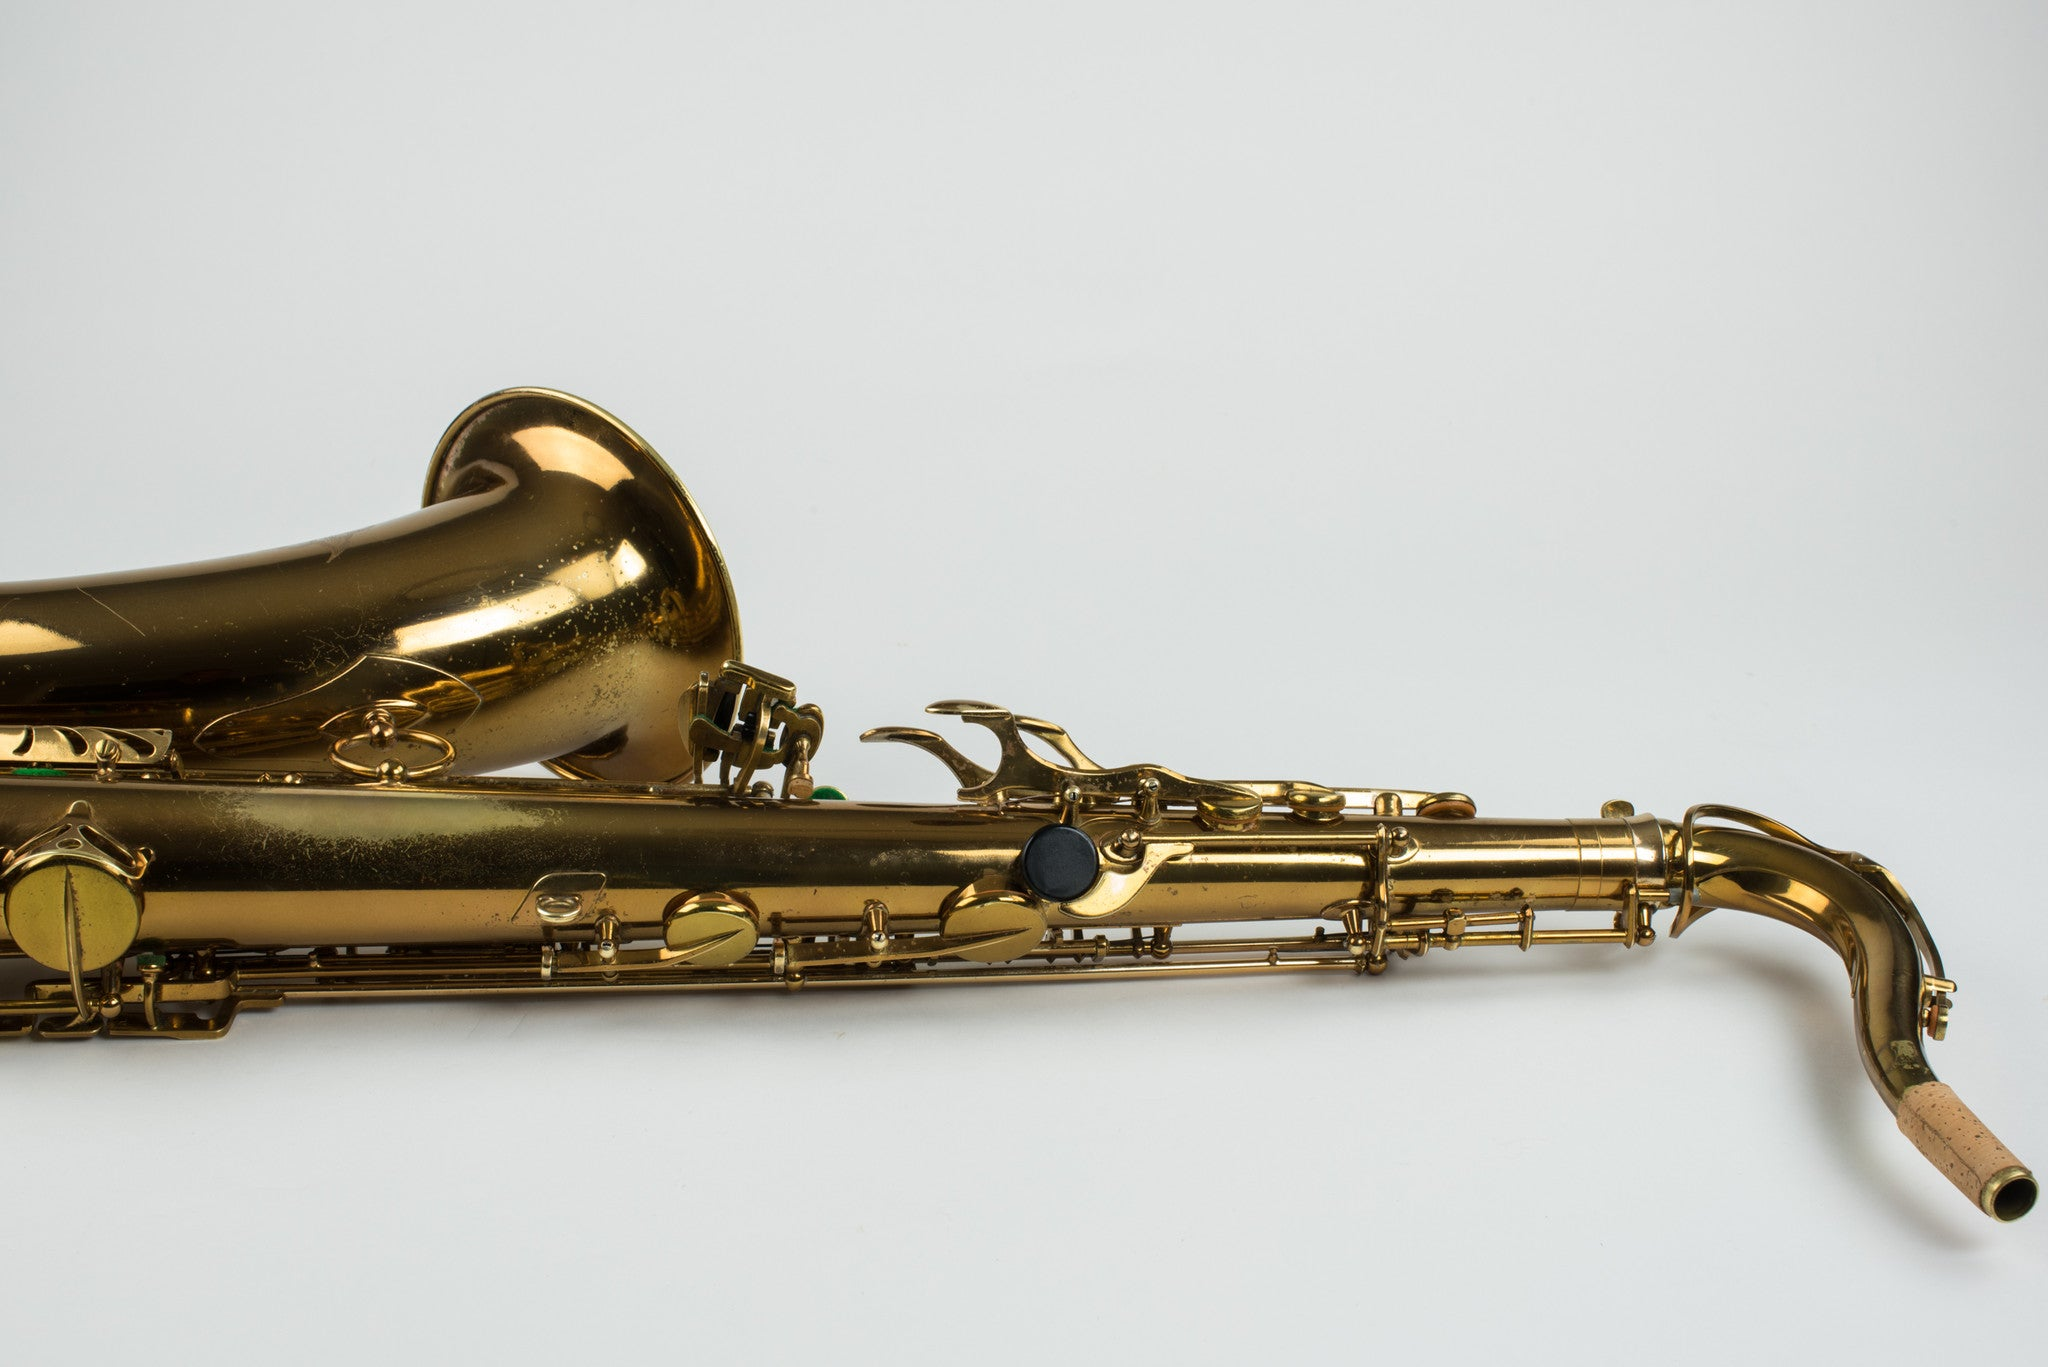 1962 Selmer Mark VI Tenor Saxophone 101,xxx, 97% ORIGINAL LACQUER, CHRIS POTTER S/N